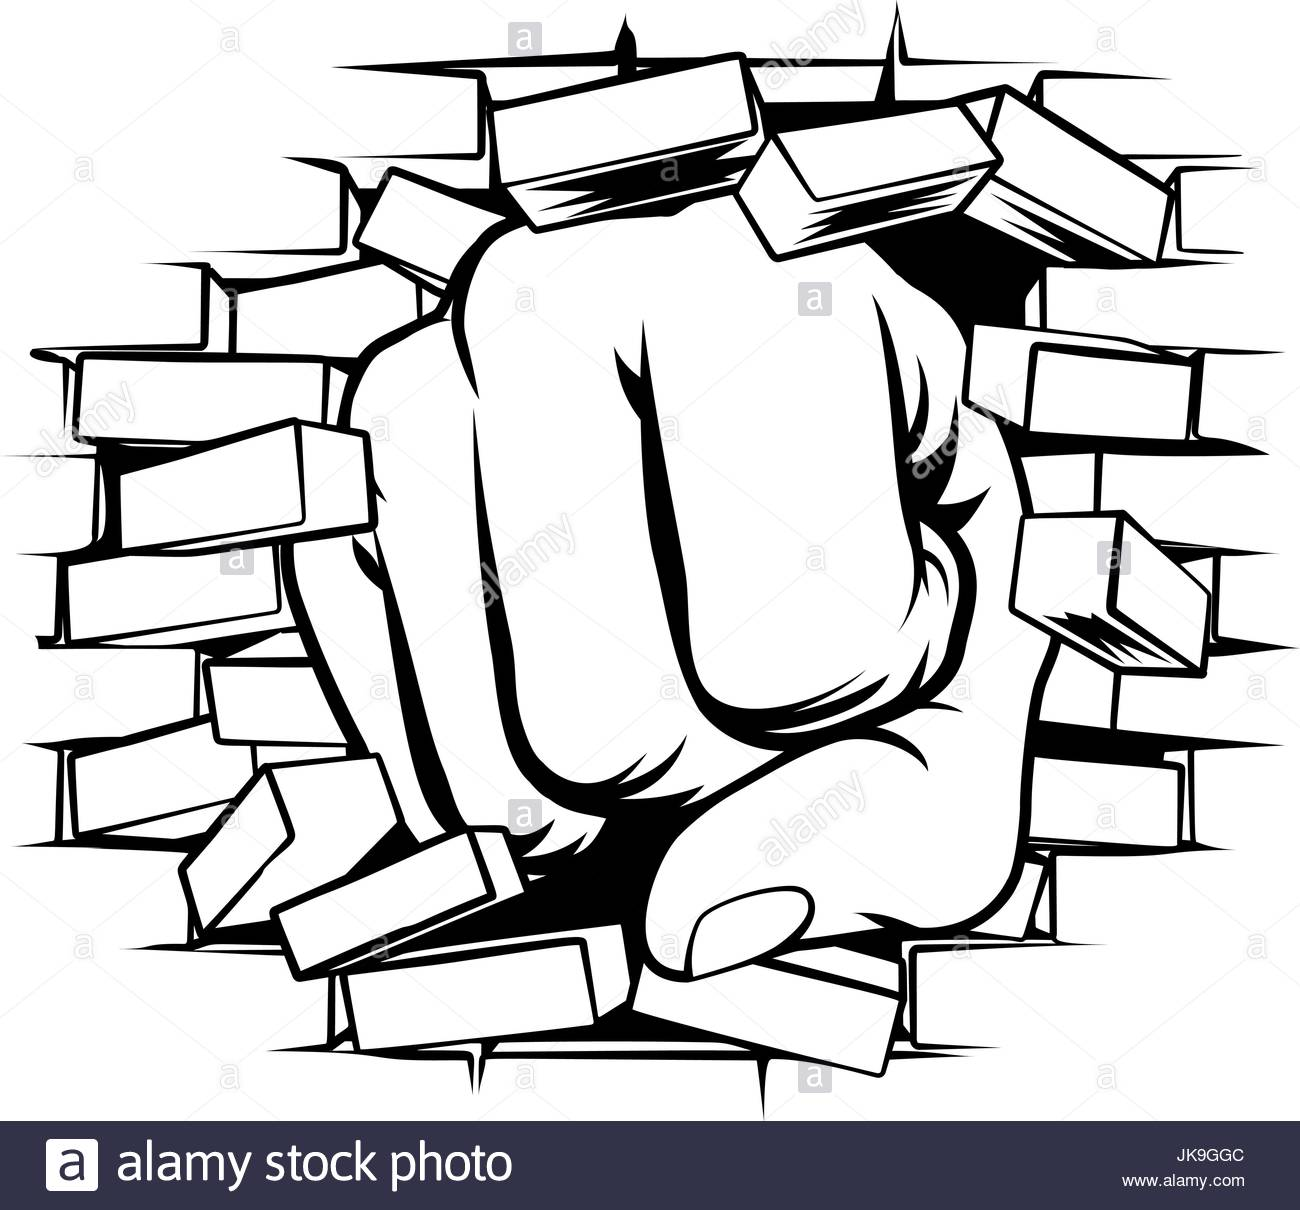 broken brick wall drawing at getdrawings com free for personal use rh getdrawings com Brick Wall Graphic Breaking Brick Wall